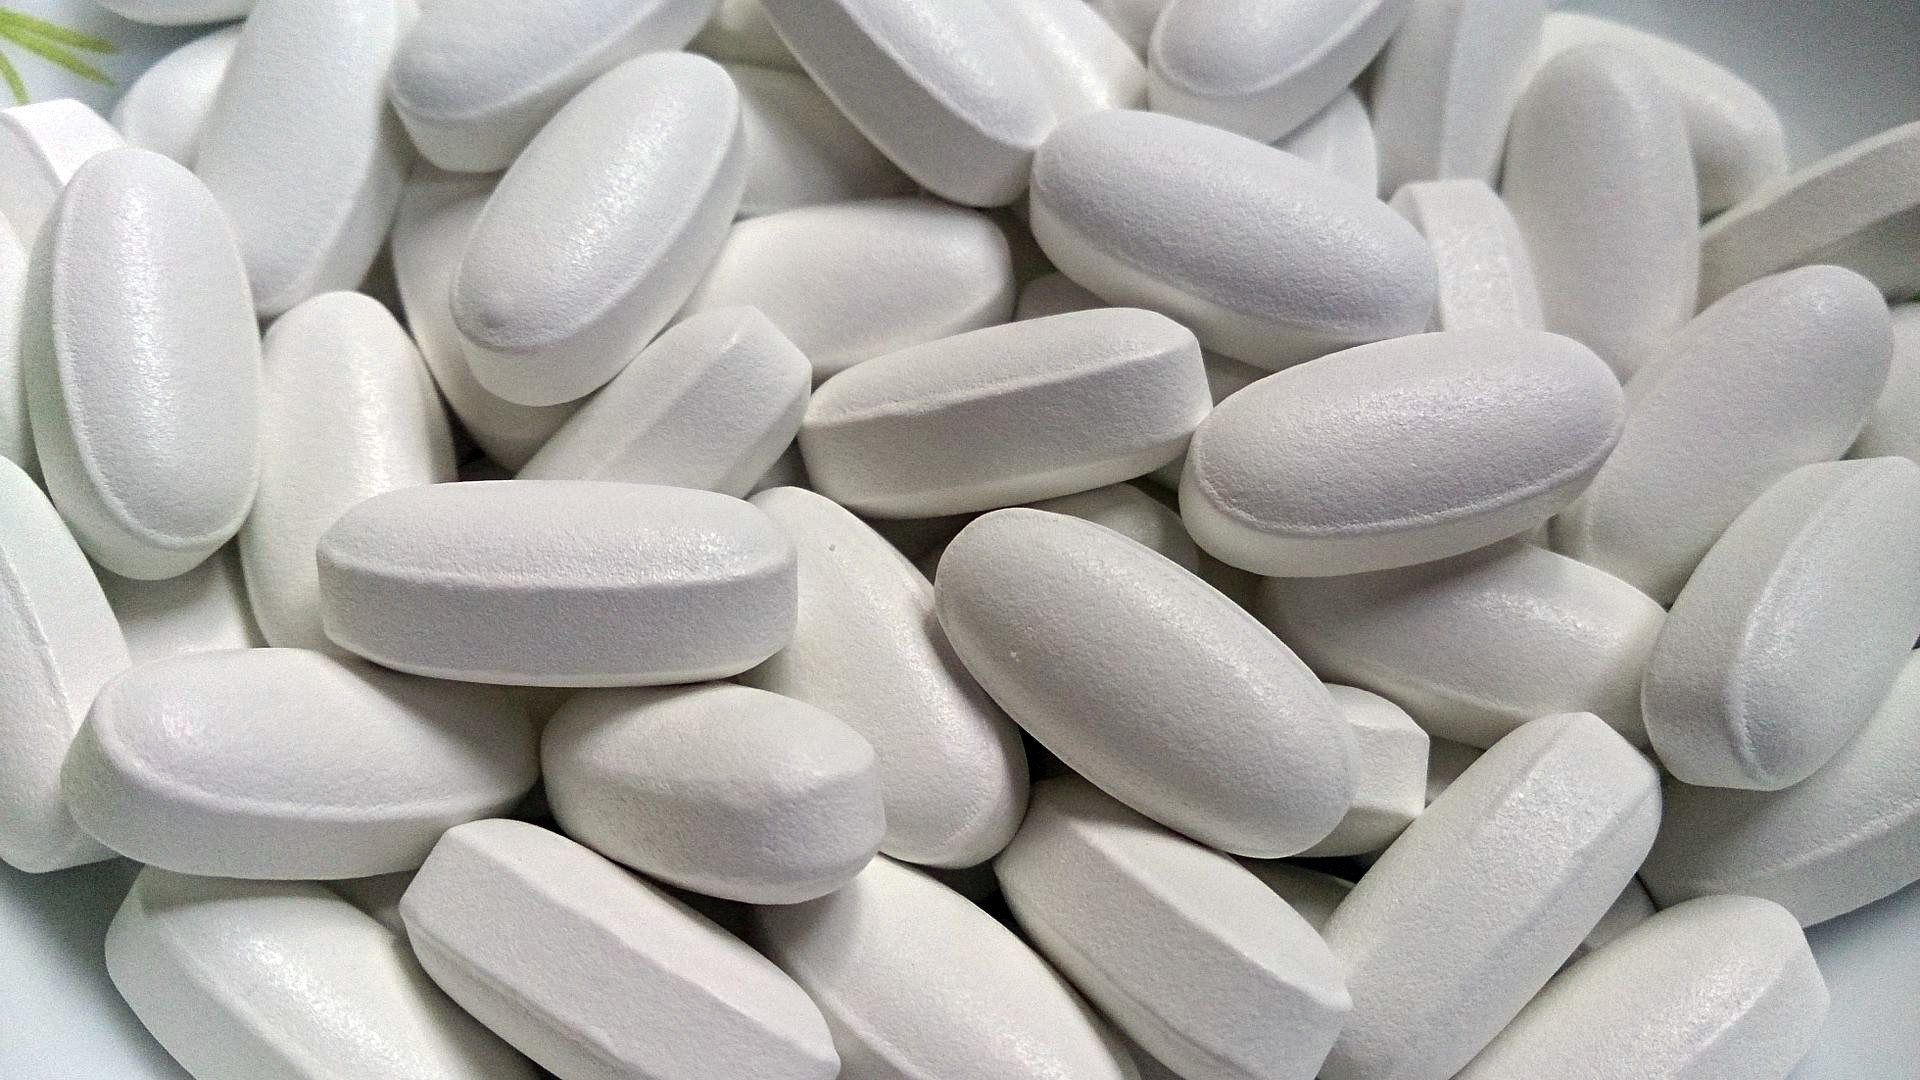 Nassau County filed suit against manufacturers of opioid pain medications in State Supreme Court on Monday for their alleged role in the drug crisis that the county says has cost millions of dollars in services.